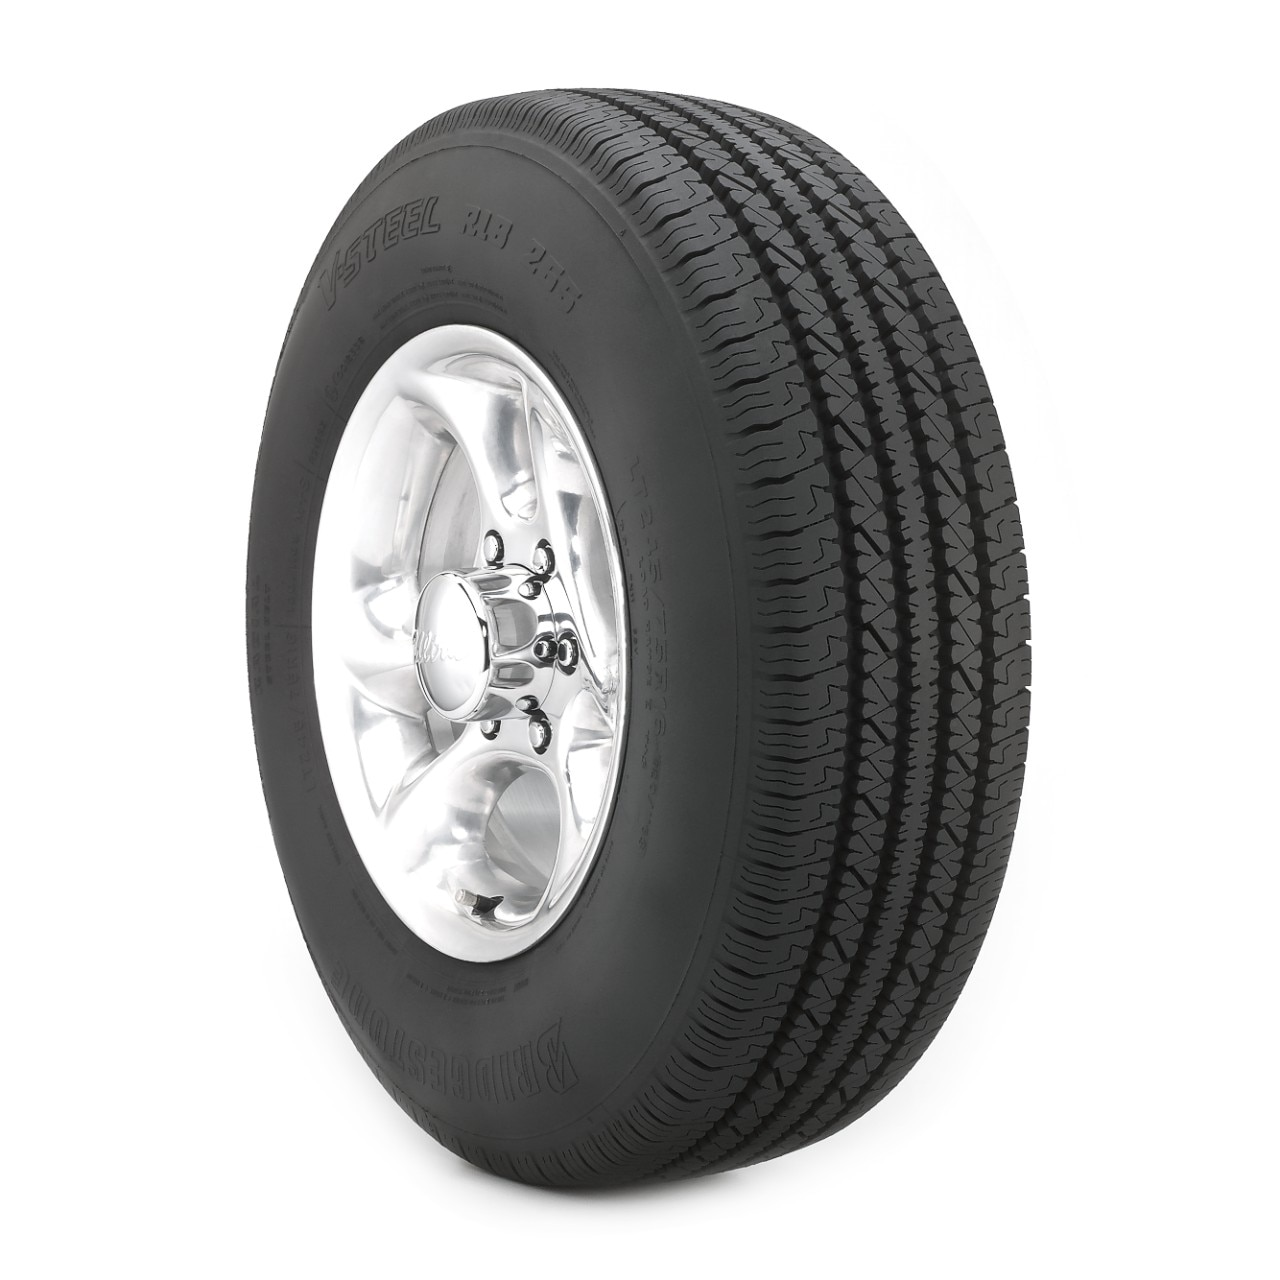 Bridgestone Other R265